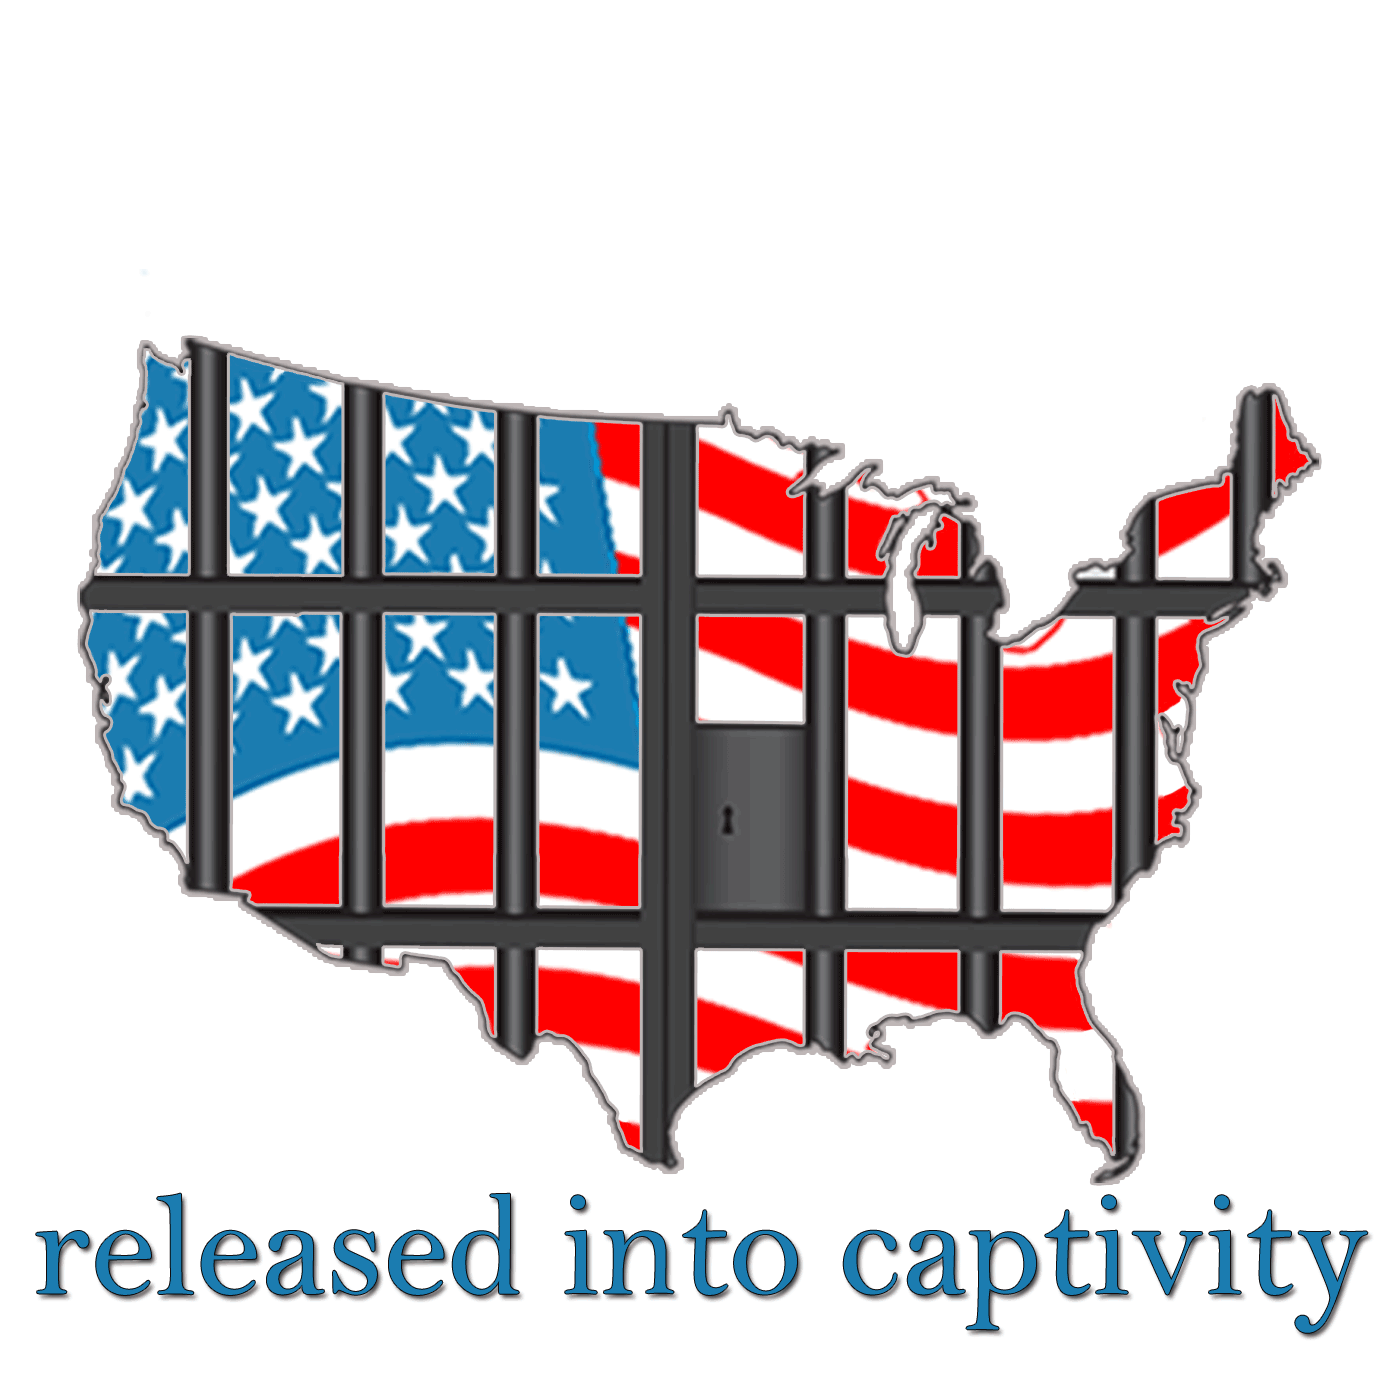 clip art royalty free download Released Into Captivity